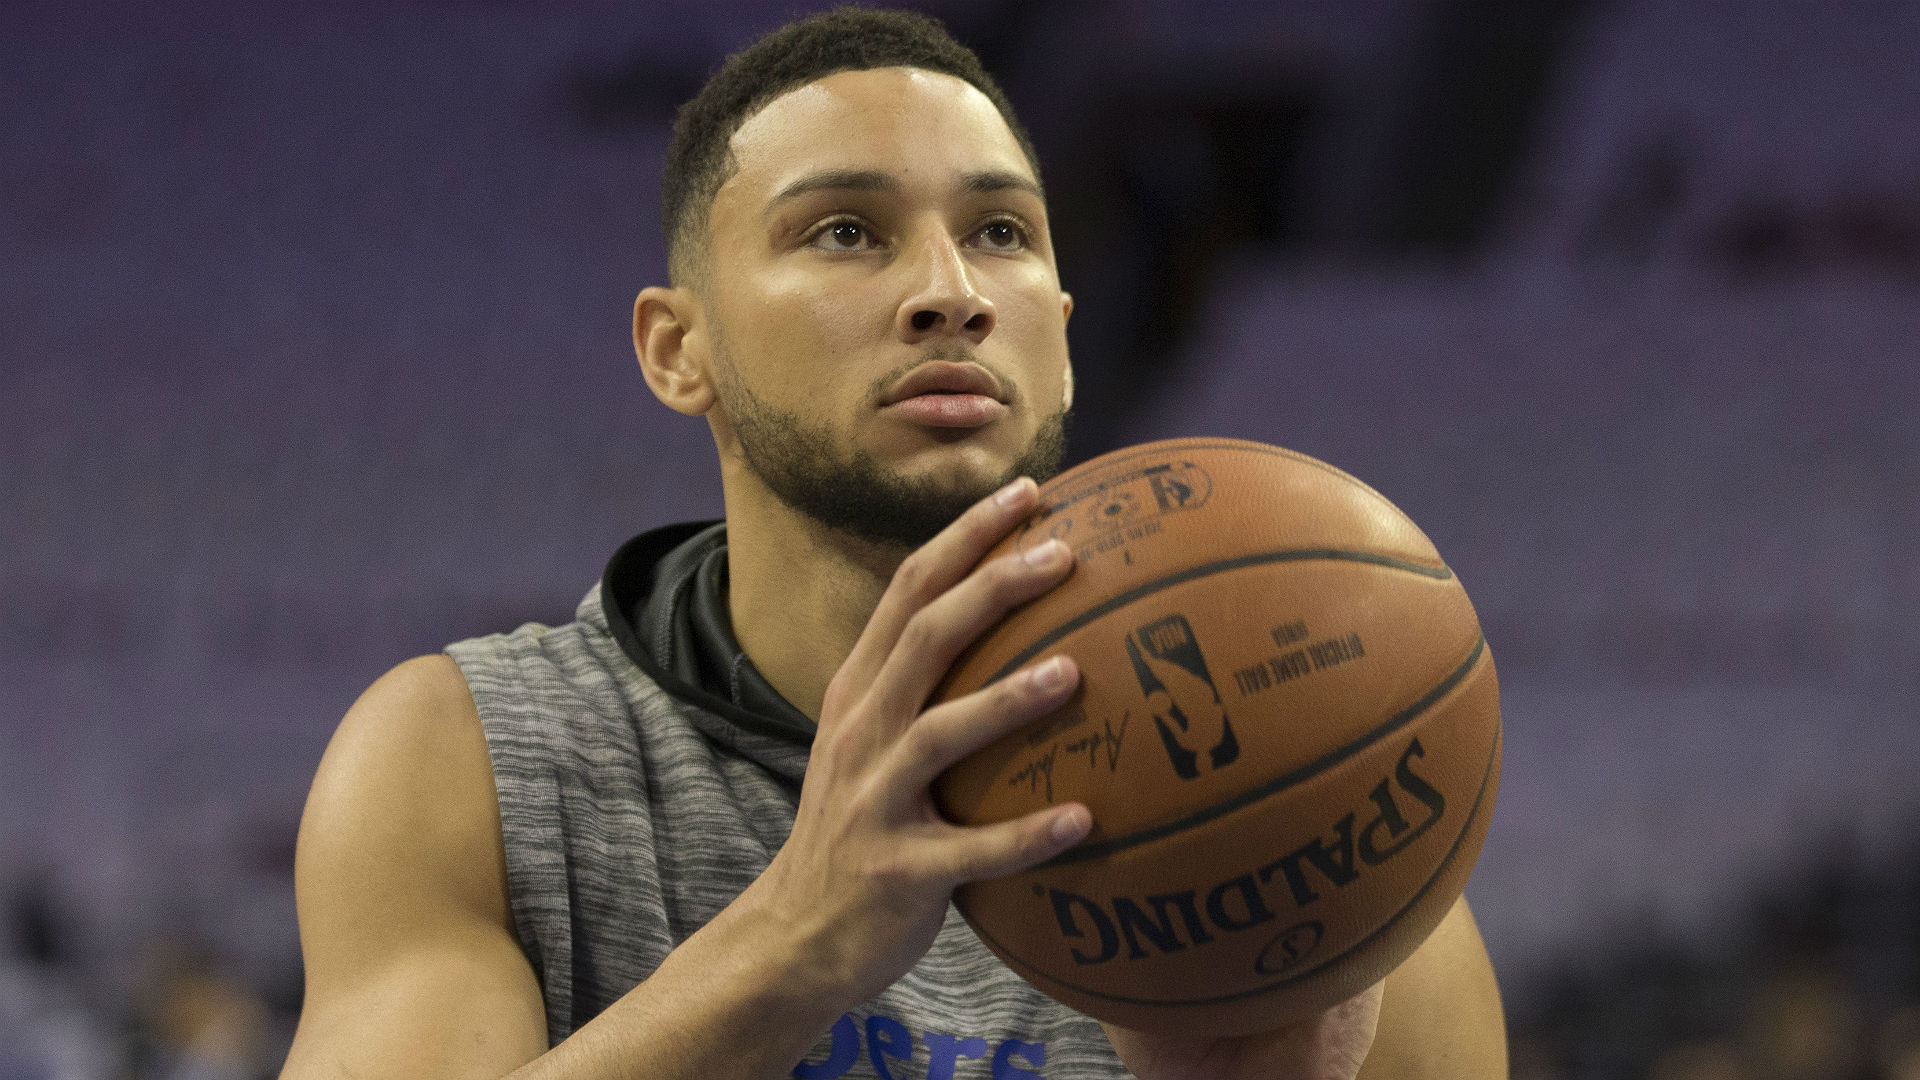 NBA playoffs 2019: 'Missing' poster in Brooklyn mocks Ben Simmons' jump shot